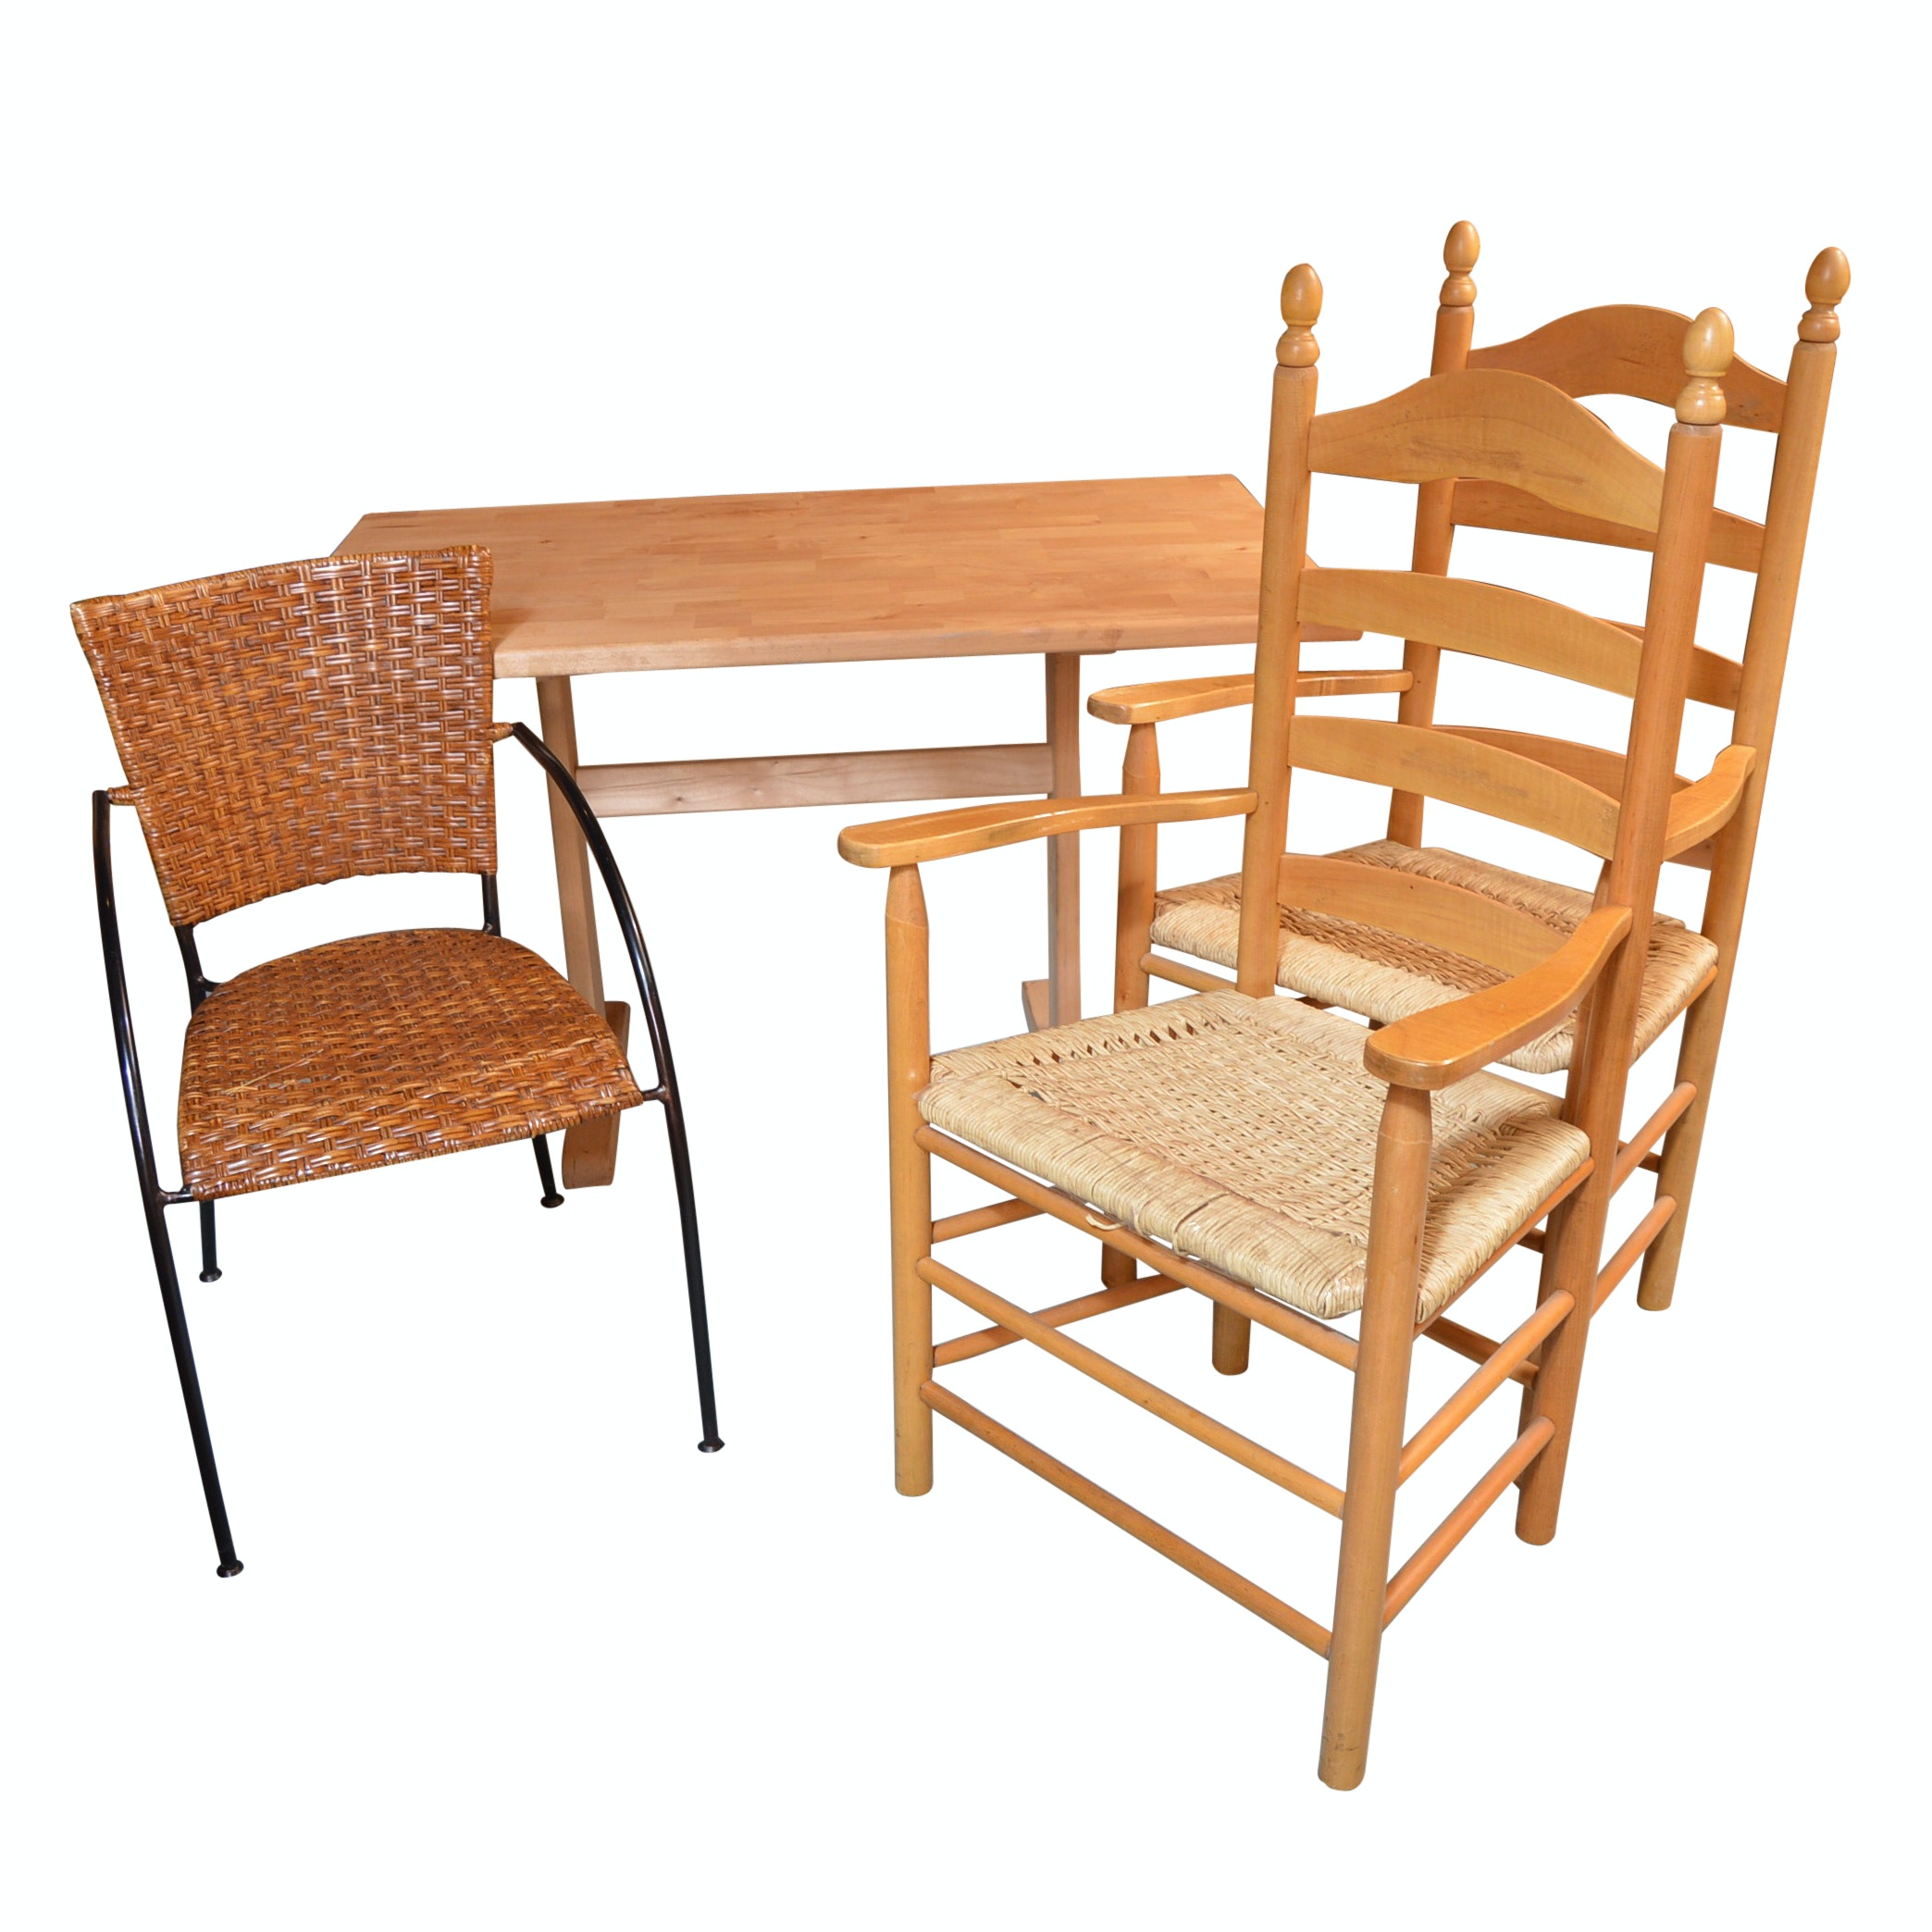 Furniture Group with Trestle Dining Table, Ladderback and Rattan Chairs